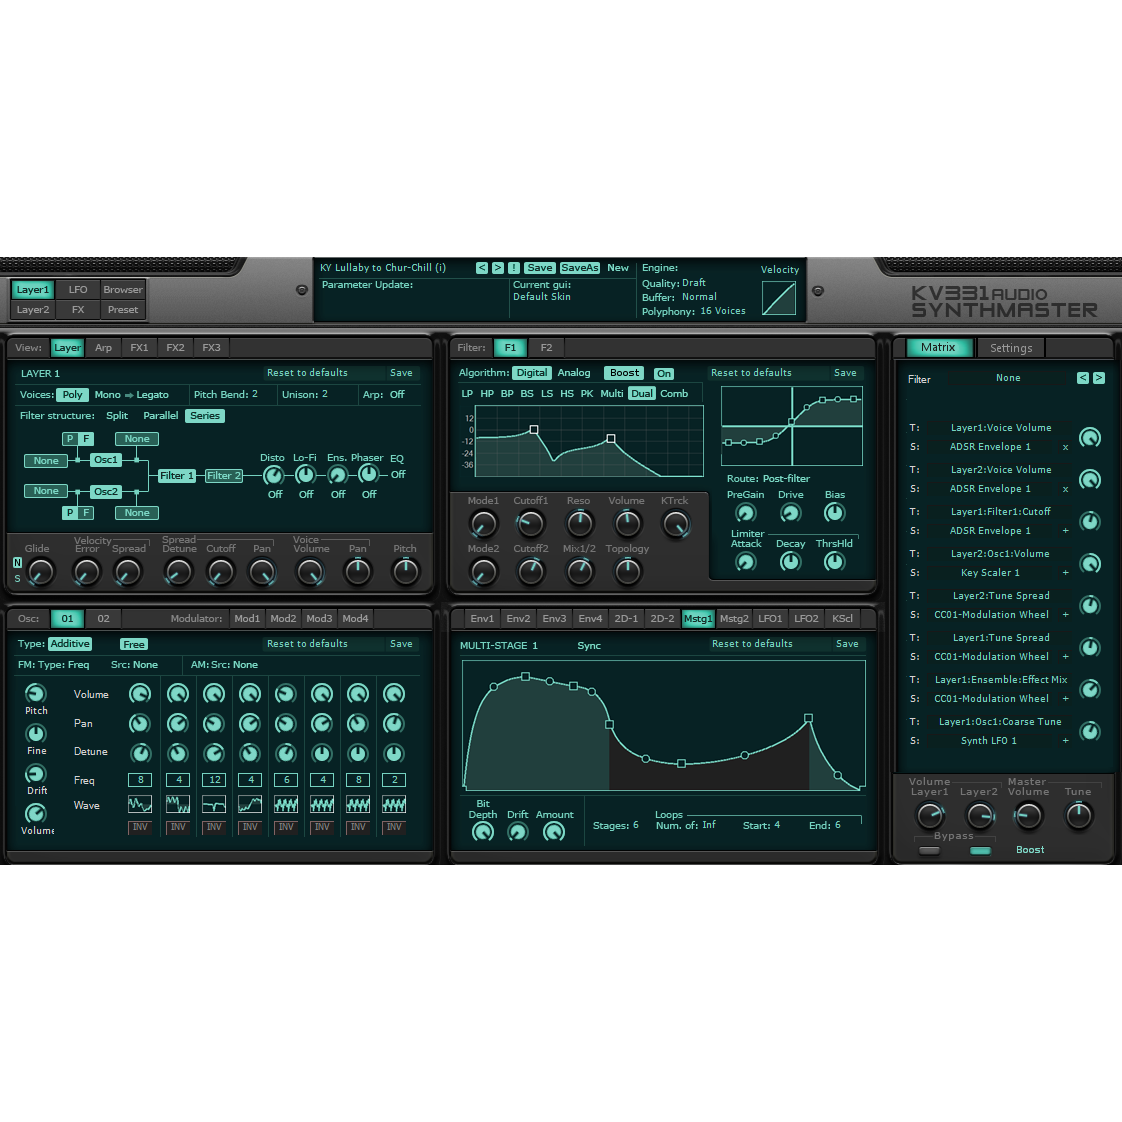 KV331 Audio Synthmaster Virtual Instruments PluginFox